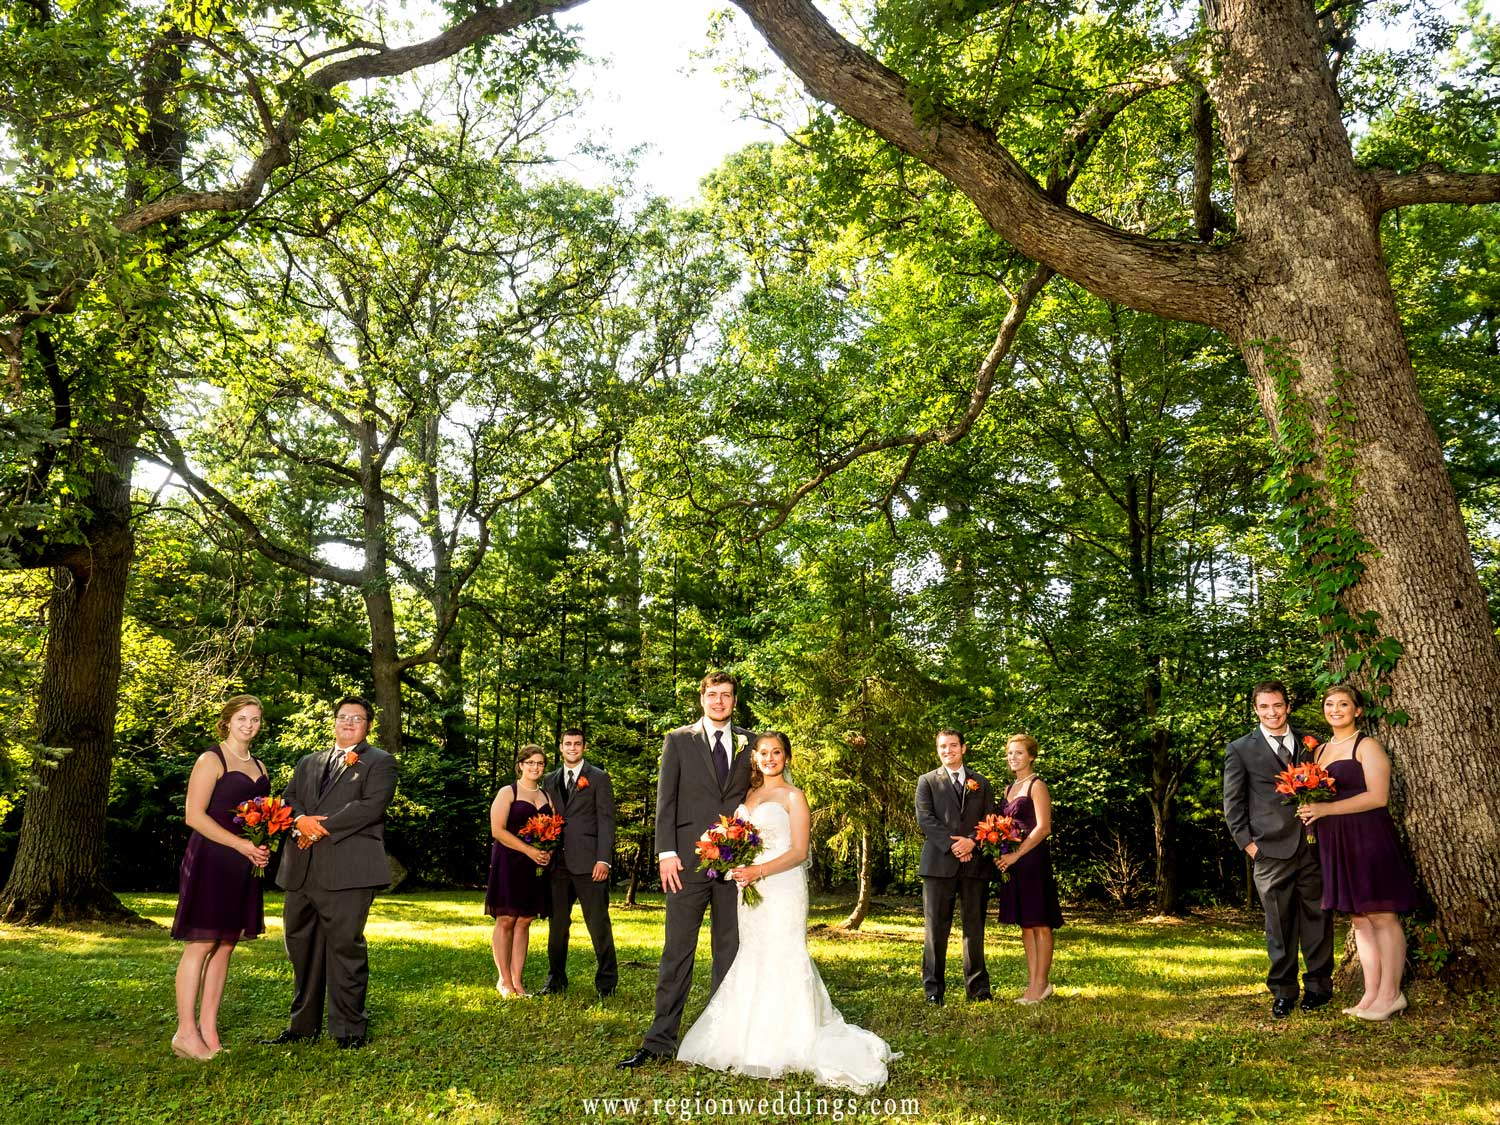 The wedding party in the woods of Cedar Lake.